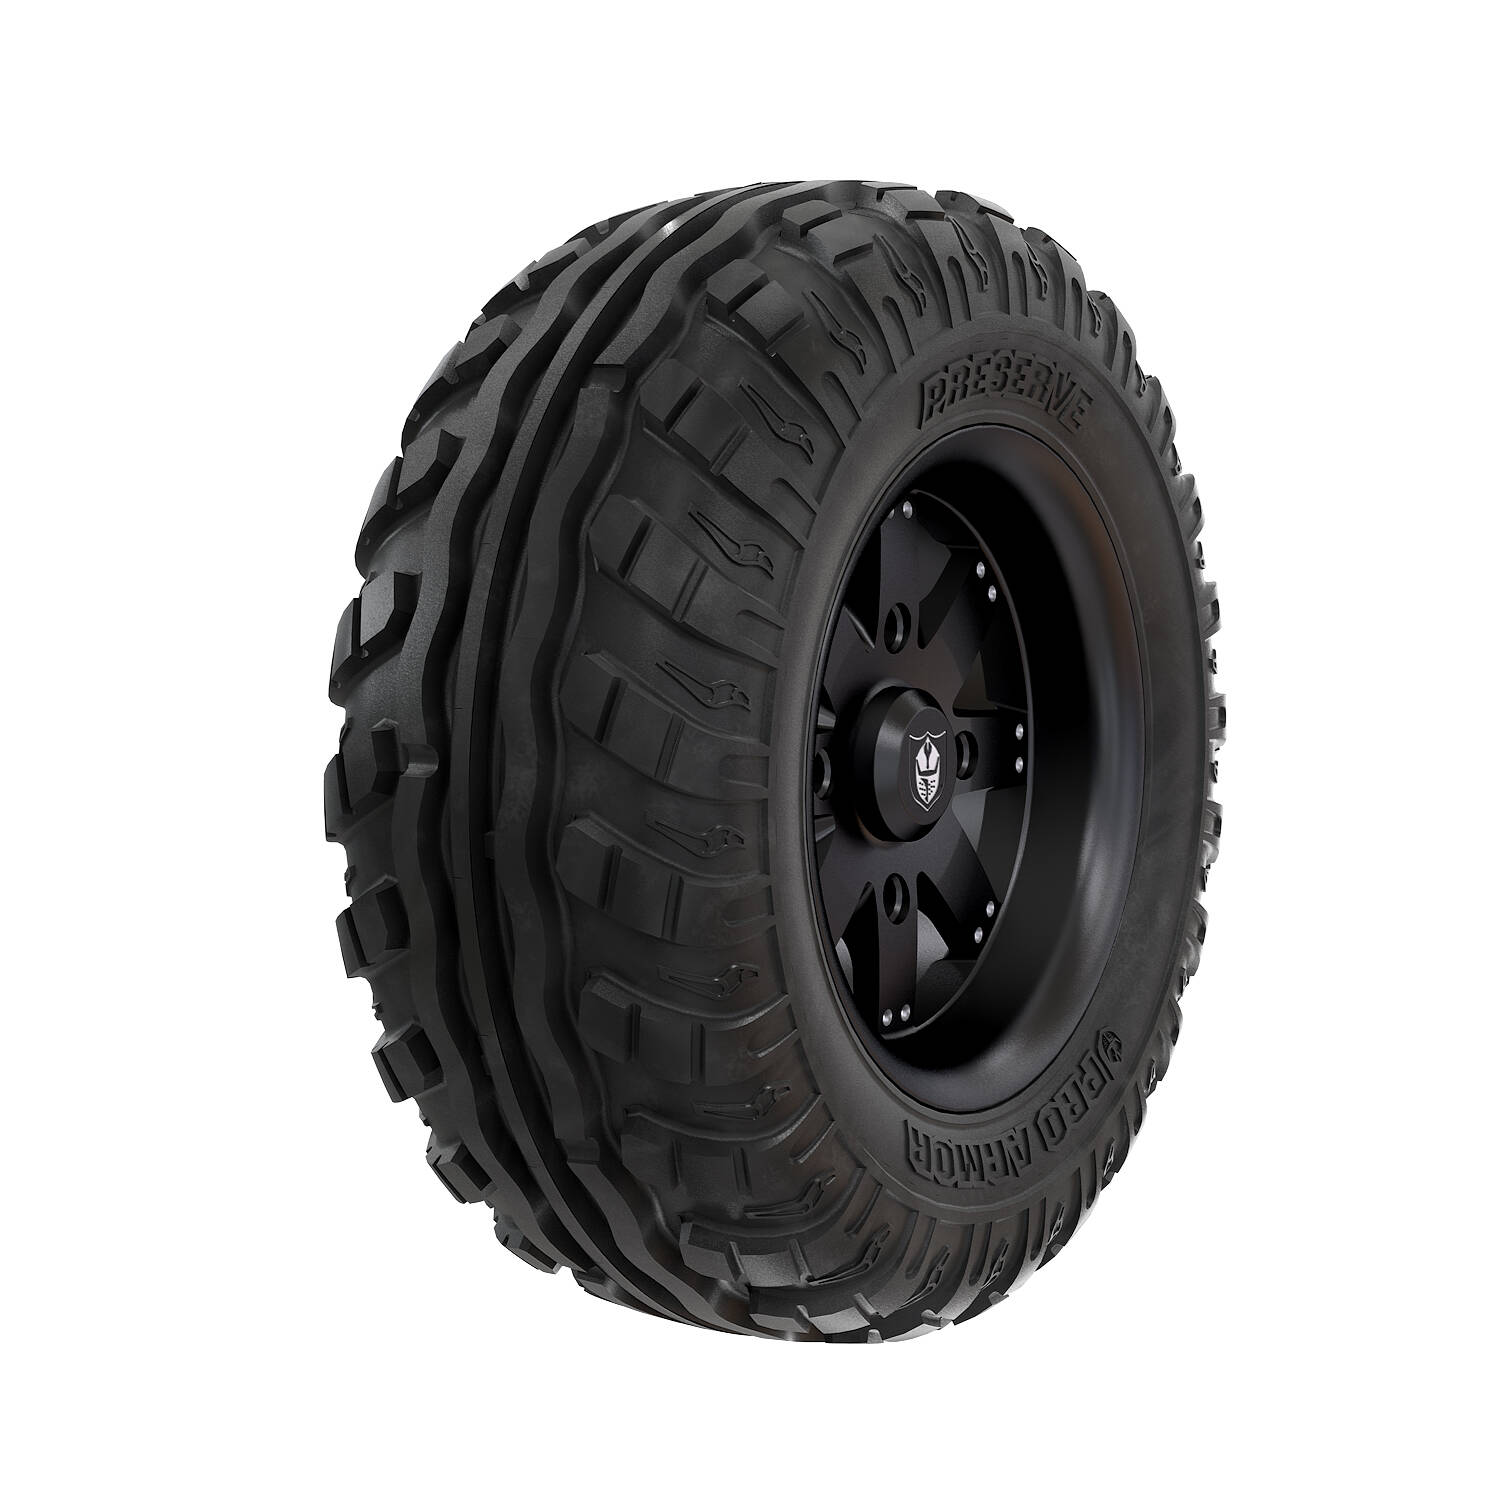 Pro Armor® Wheel & Tire Set: Amplify - Matte Black & Preserve™ - 27""